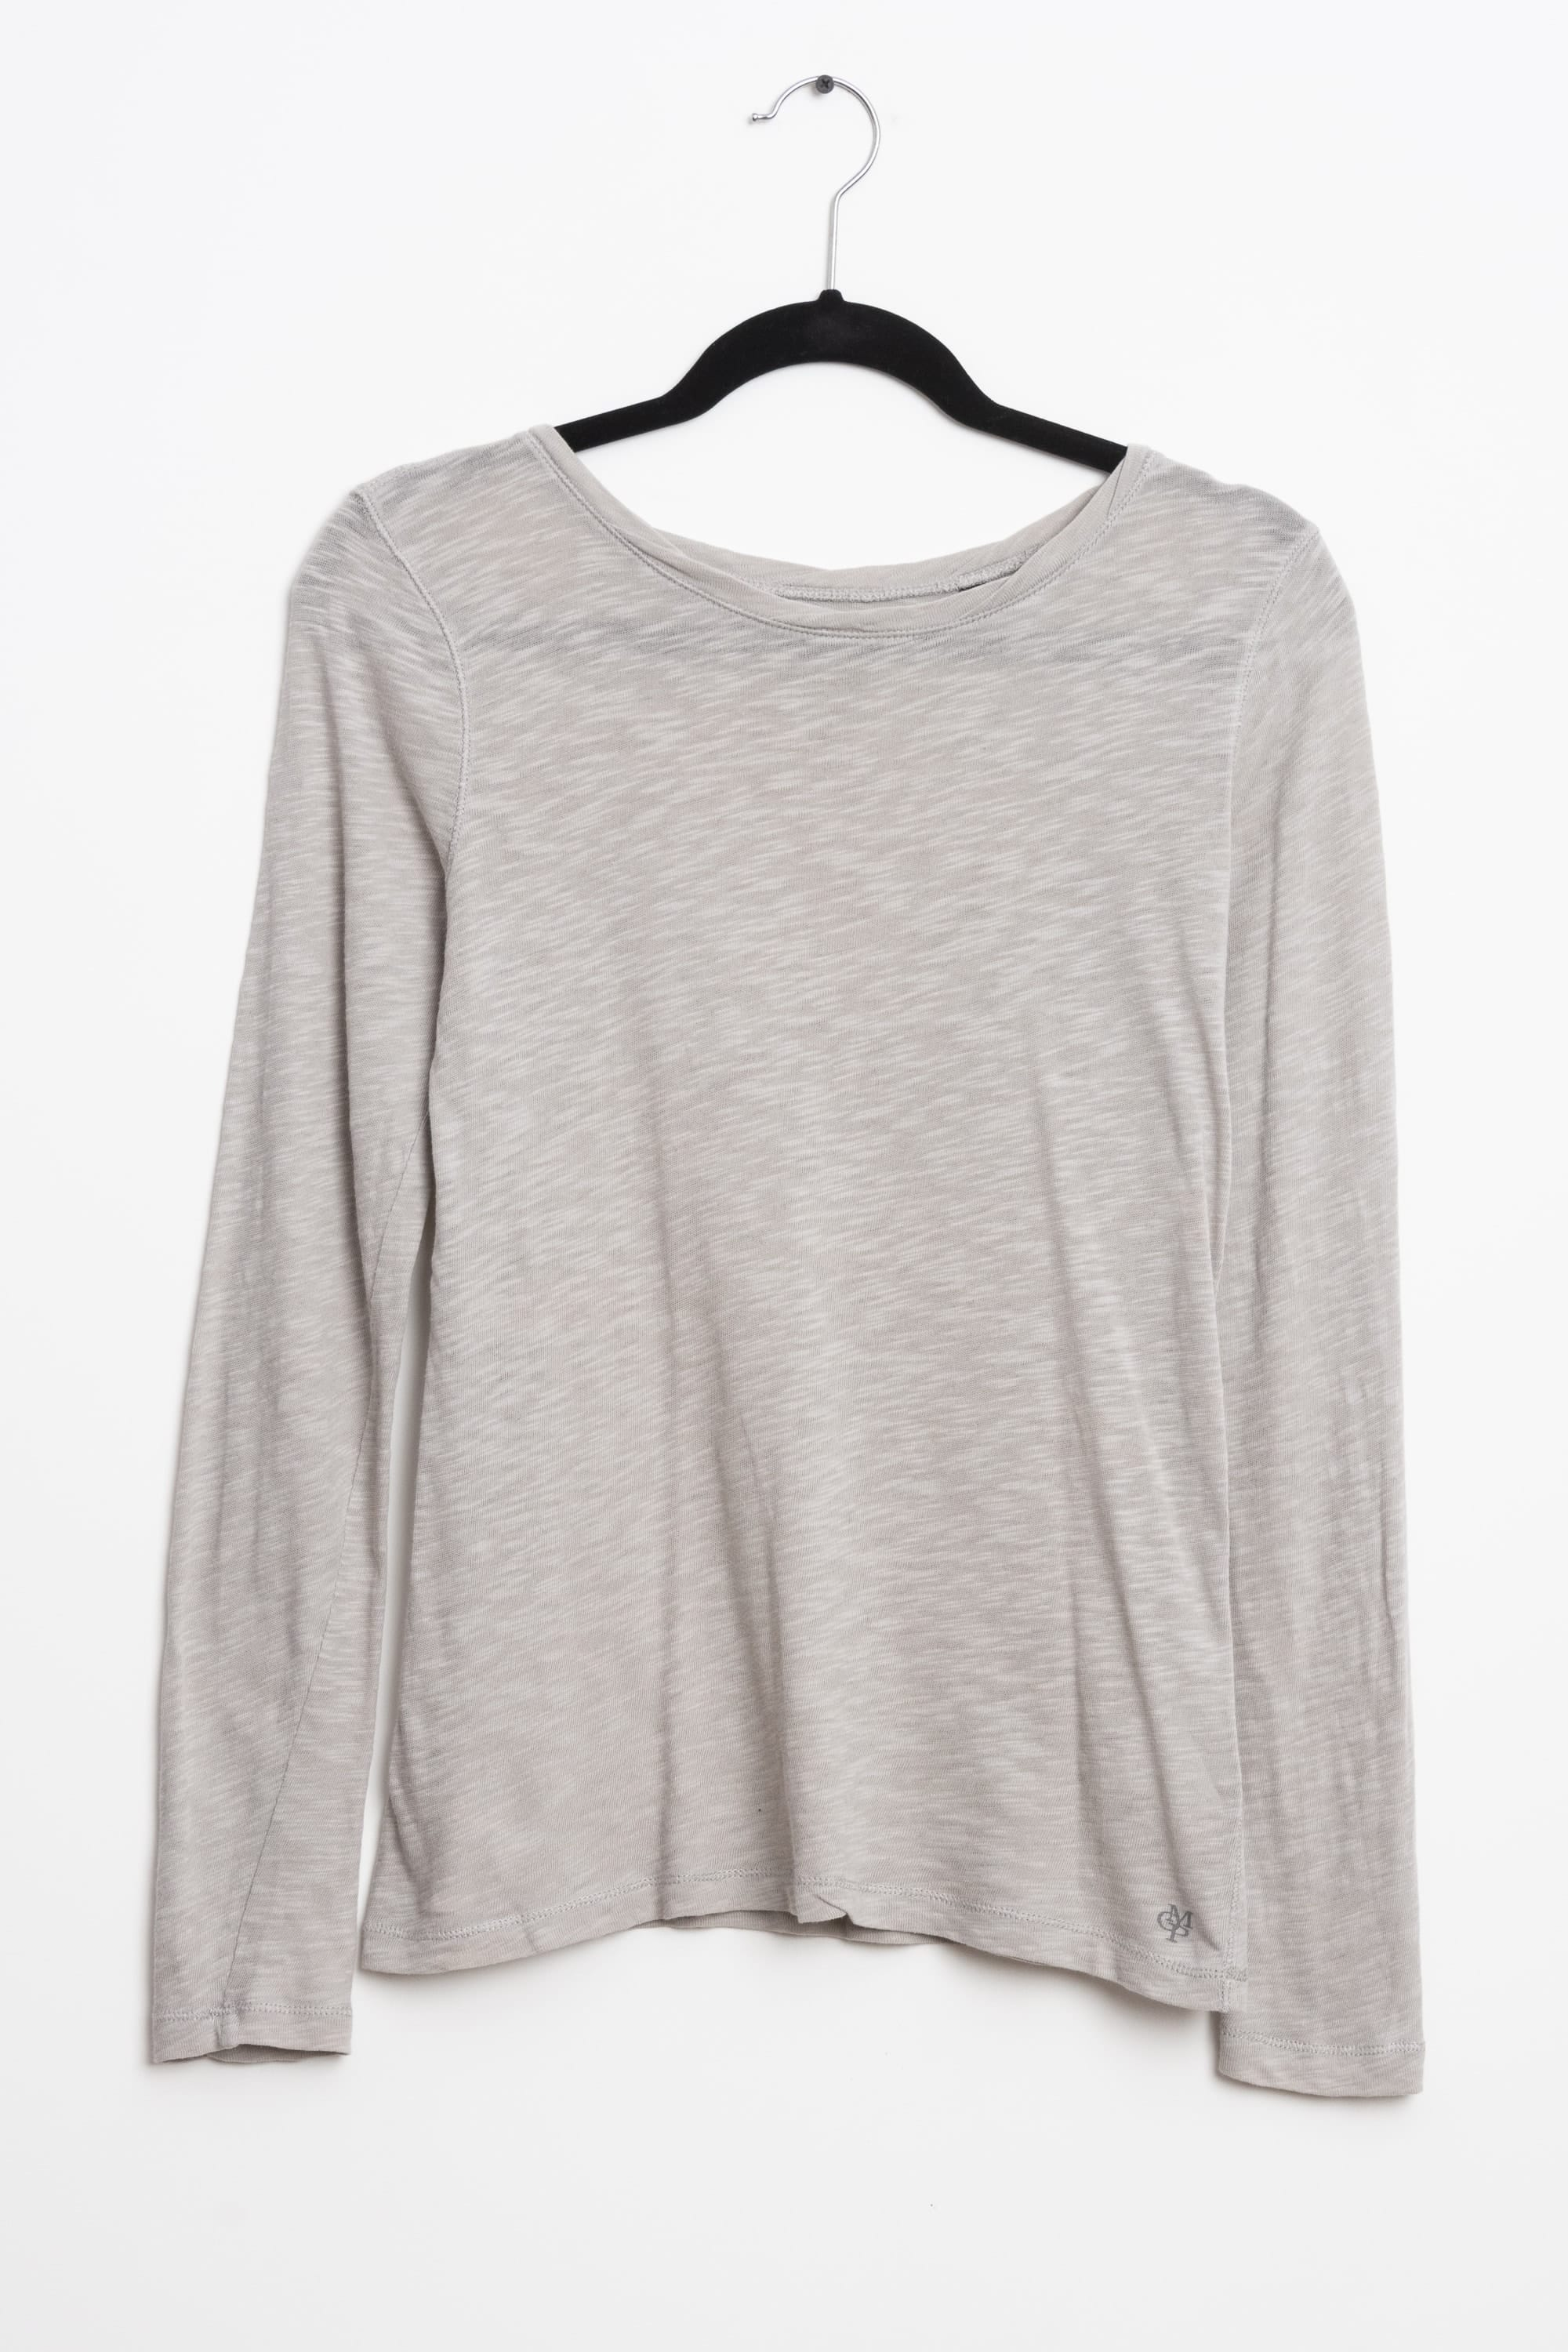 Marc O'Polo Sweat / Fleece Grau Gr.M